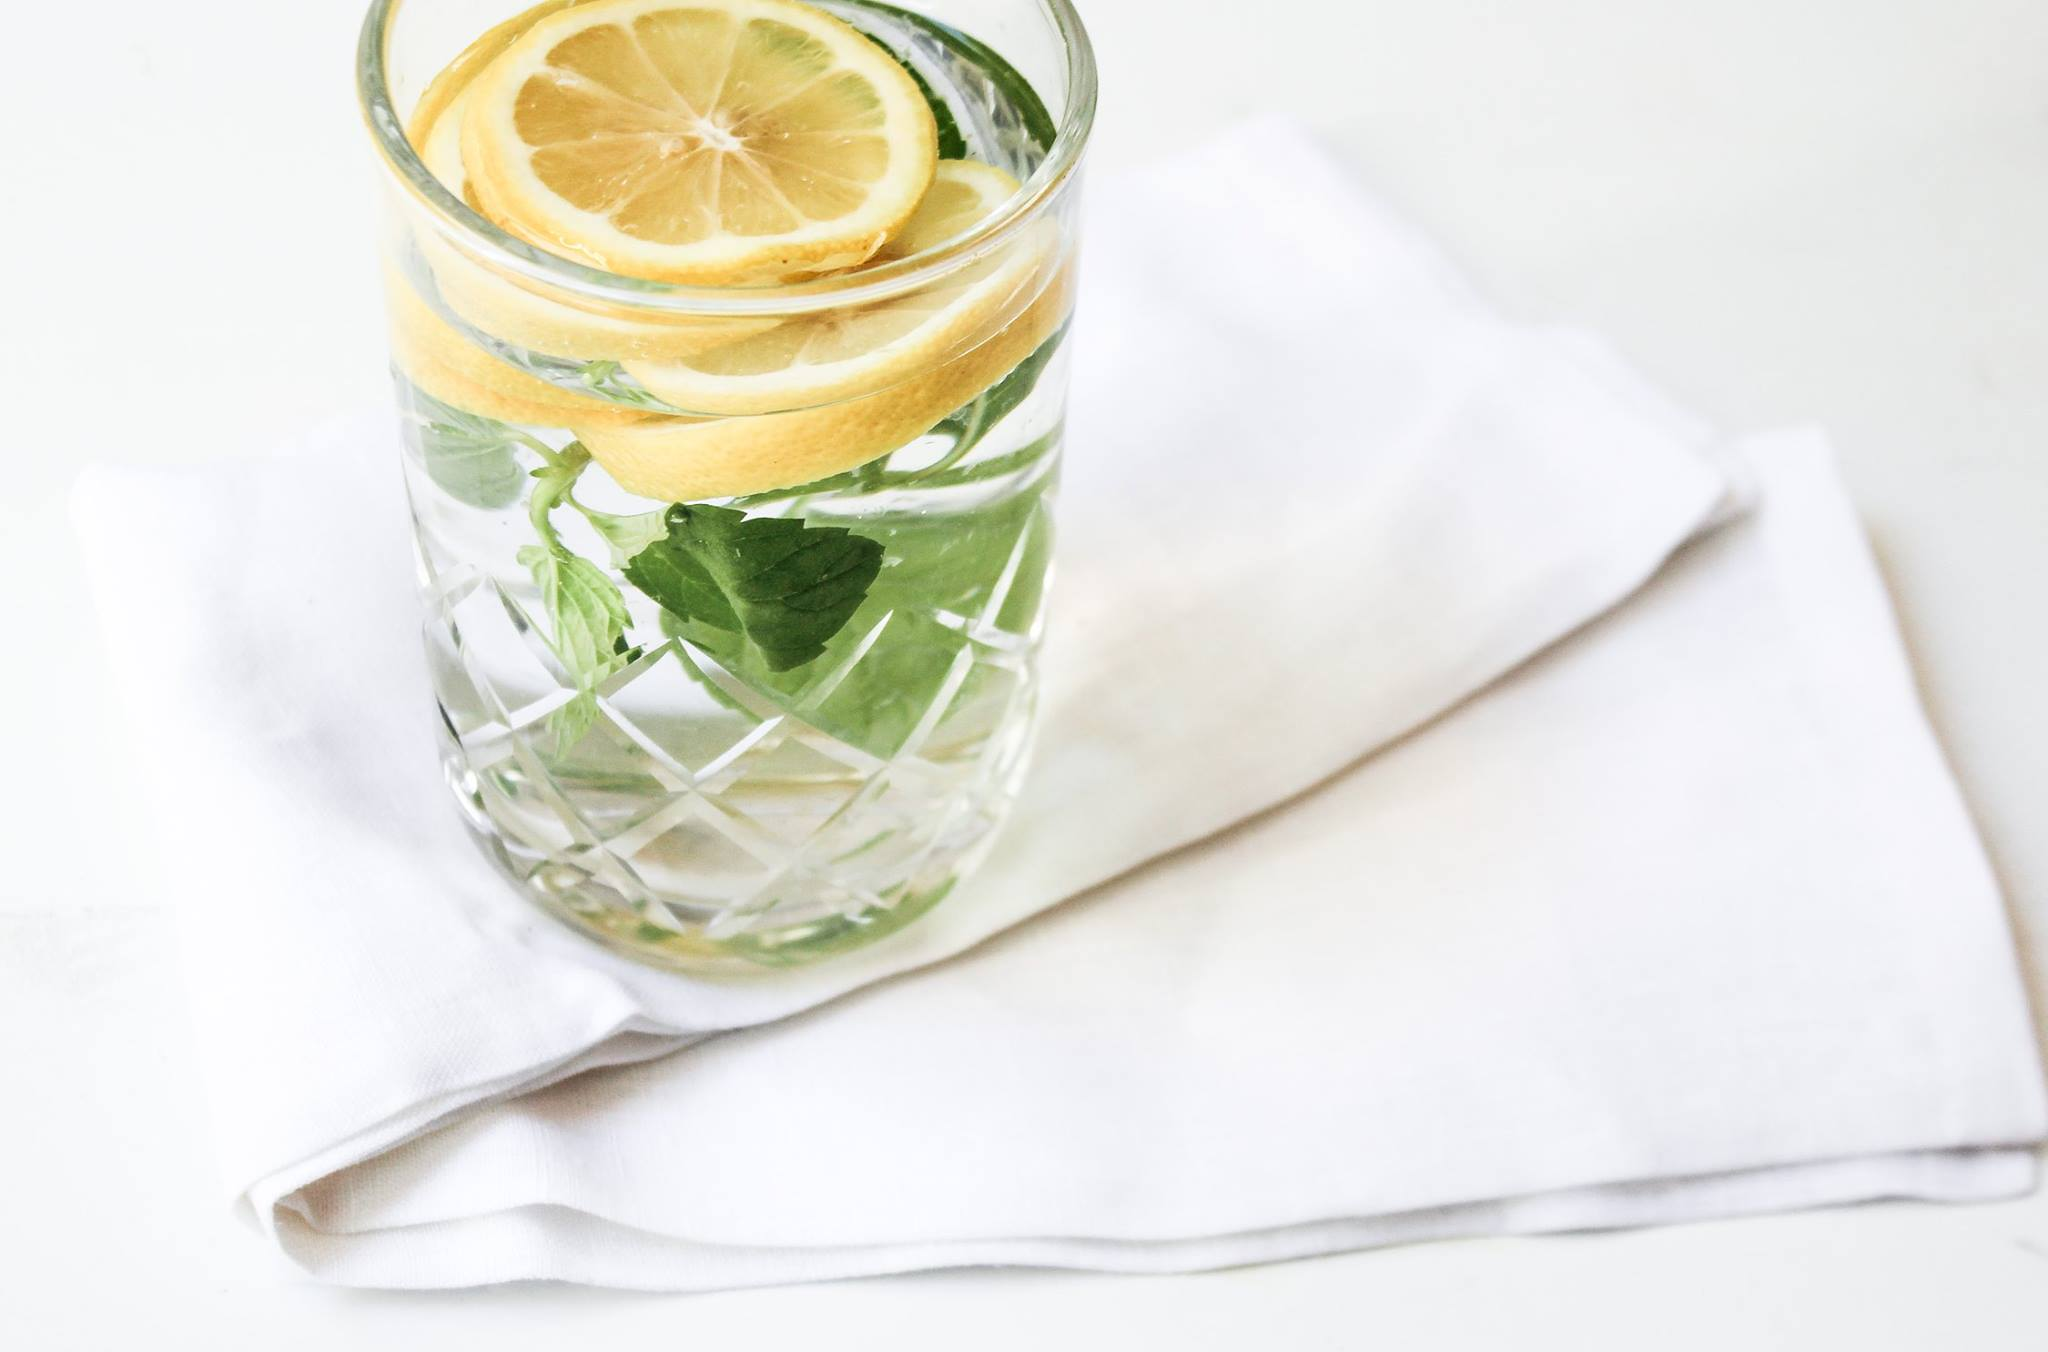 Add fresh lemon or mint to your water to liven it up and stay refreshed.